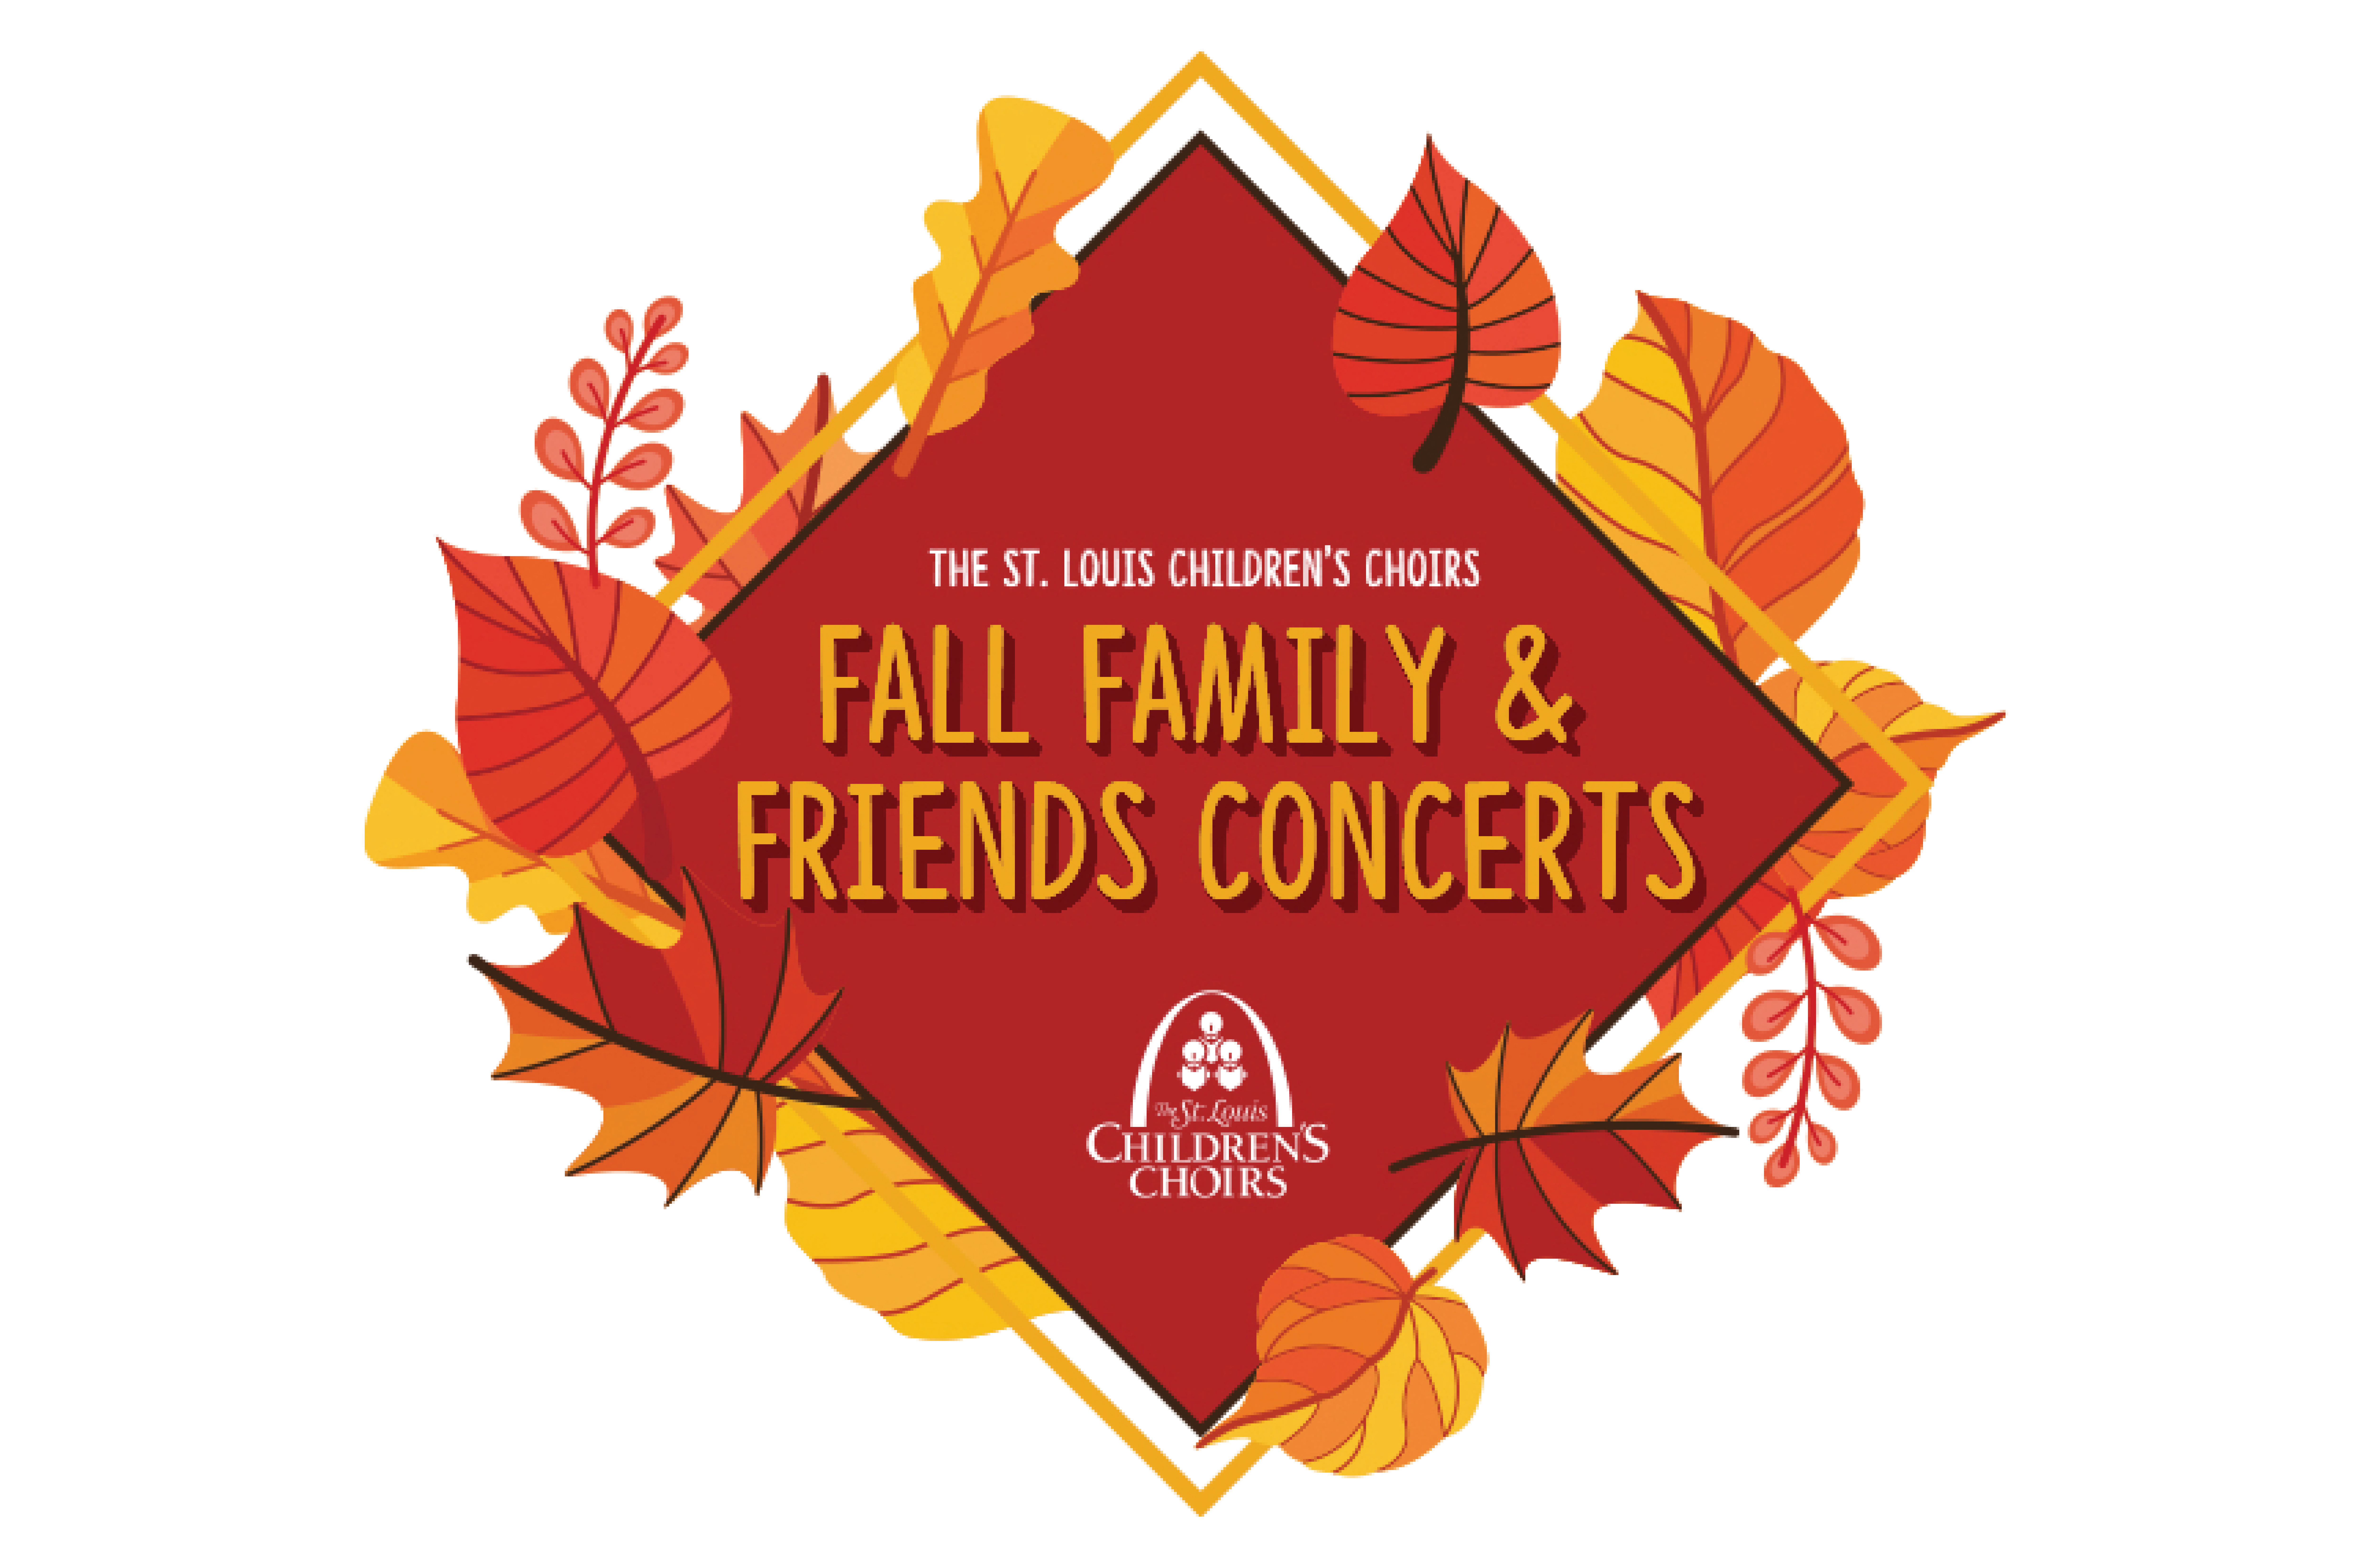 Fall Family & Friends Concert